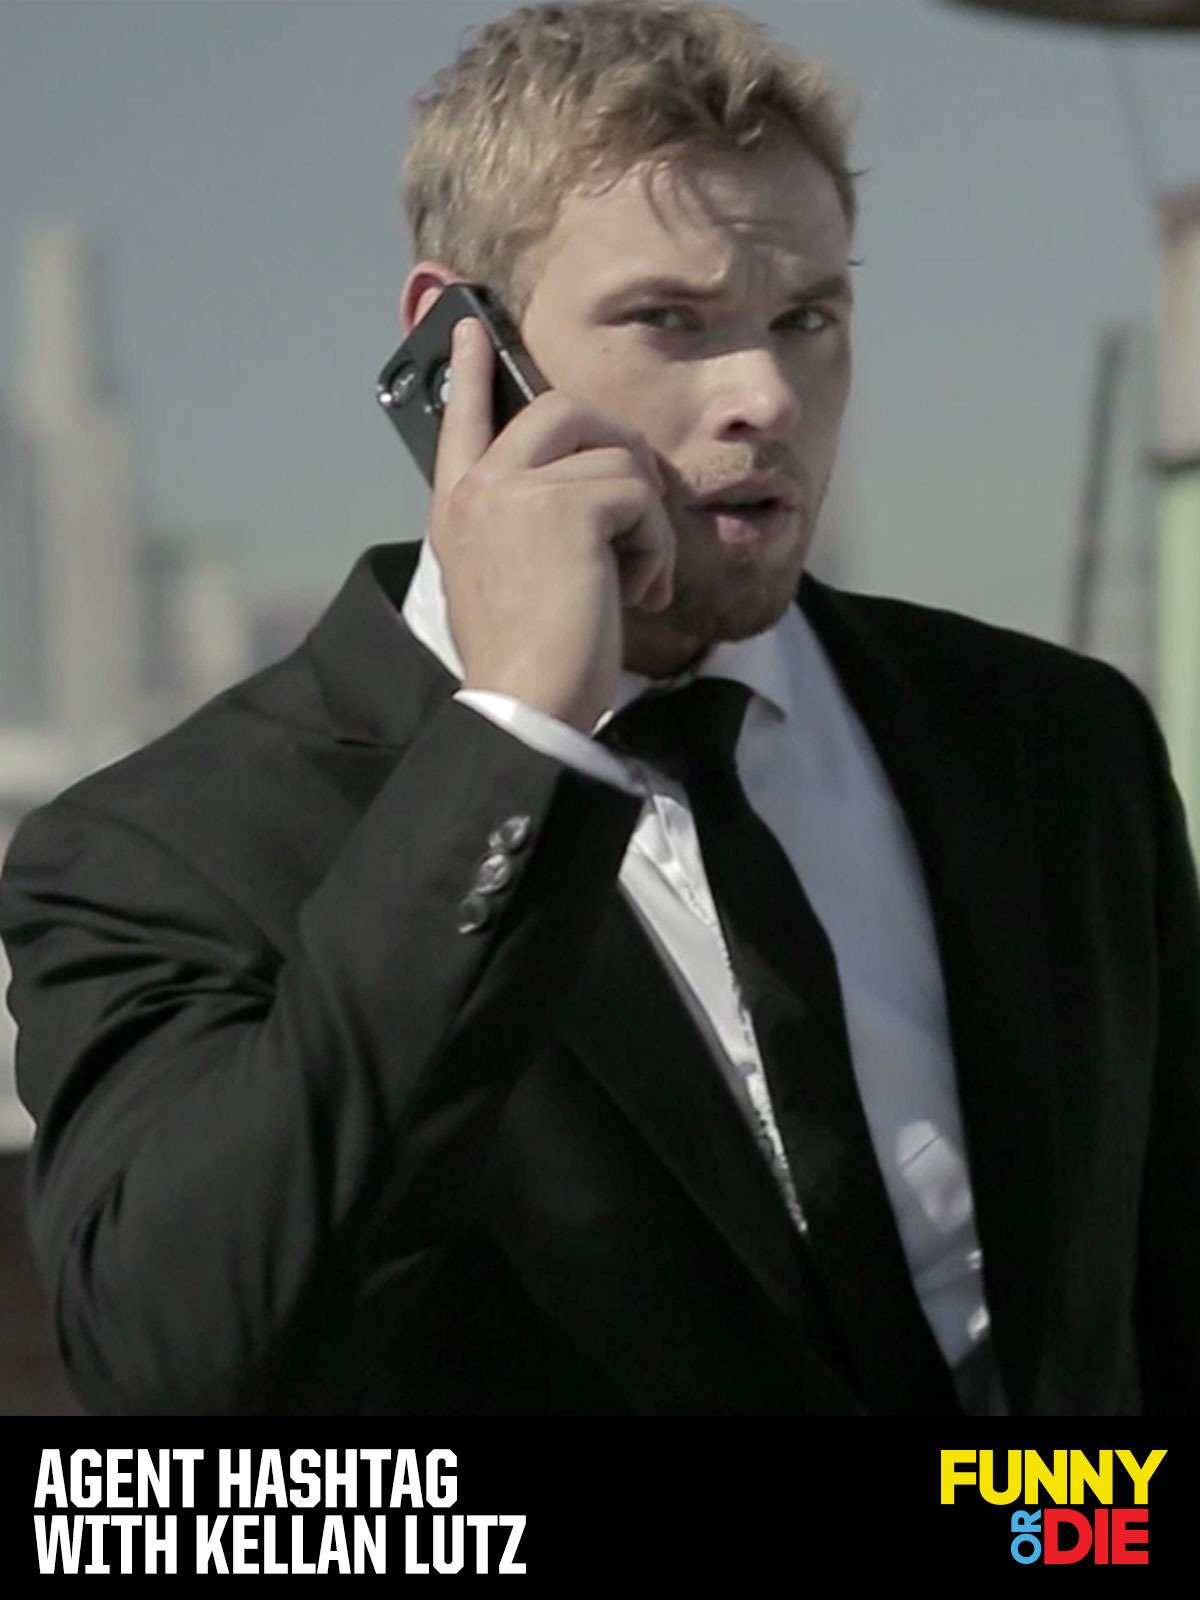 Agent Hashtag with Kellan Lutz